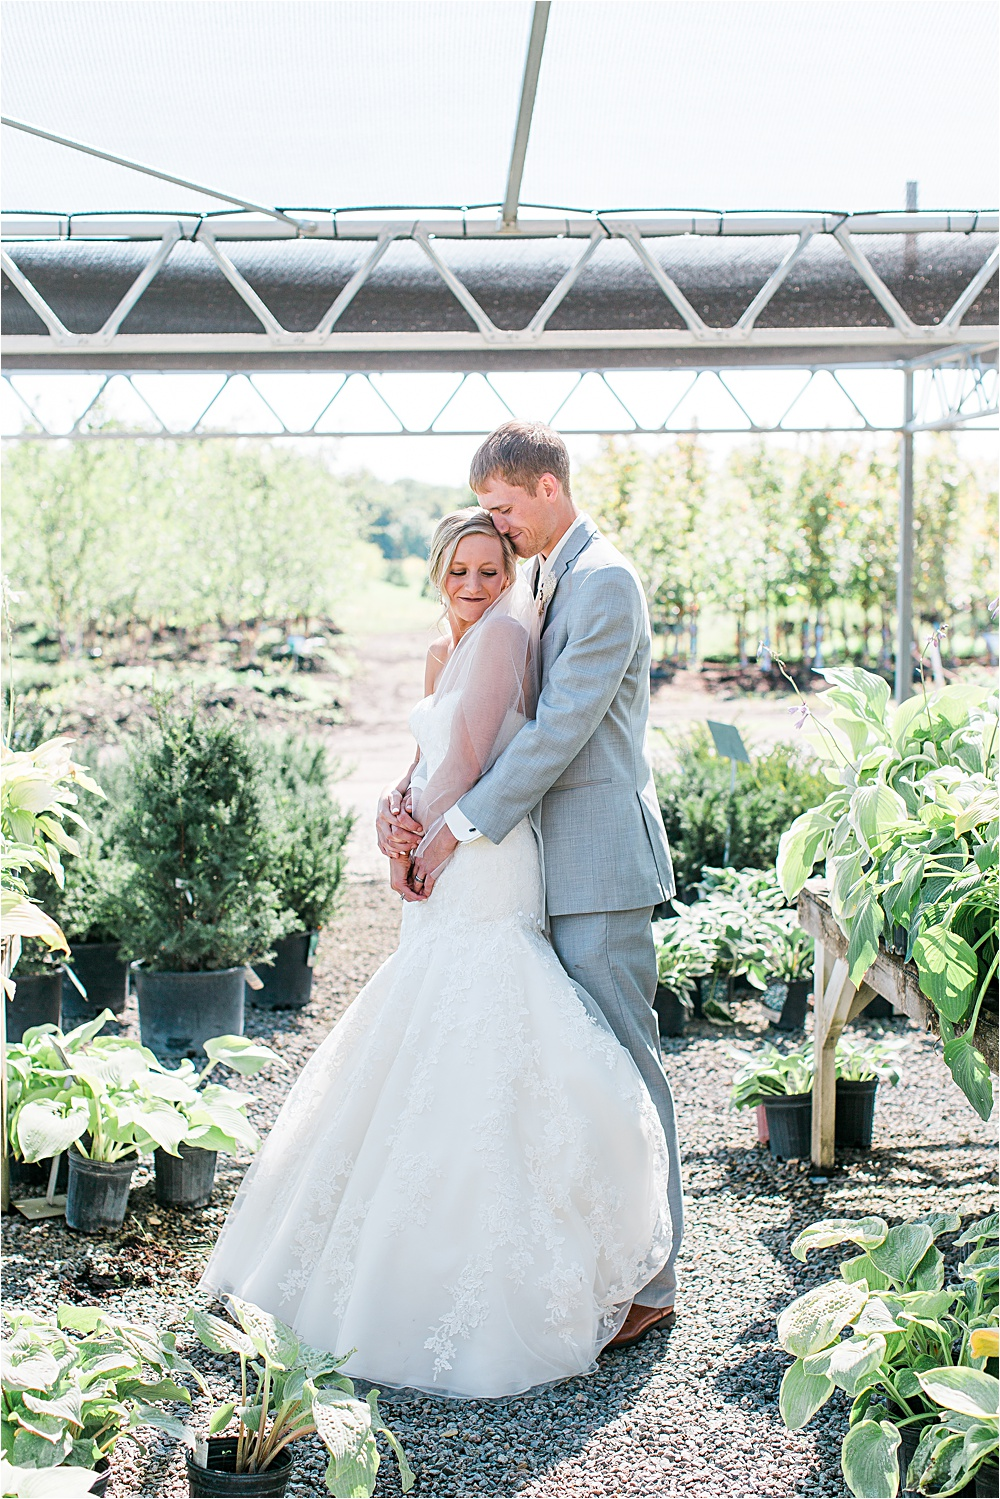 Bride and groom portrait outside at Minnesota summer wedding in Buffalo MN photographed by Mallory Kiesow, Minnesota wedding photographer